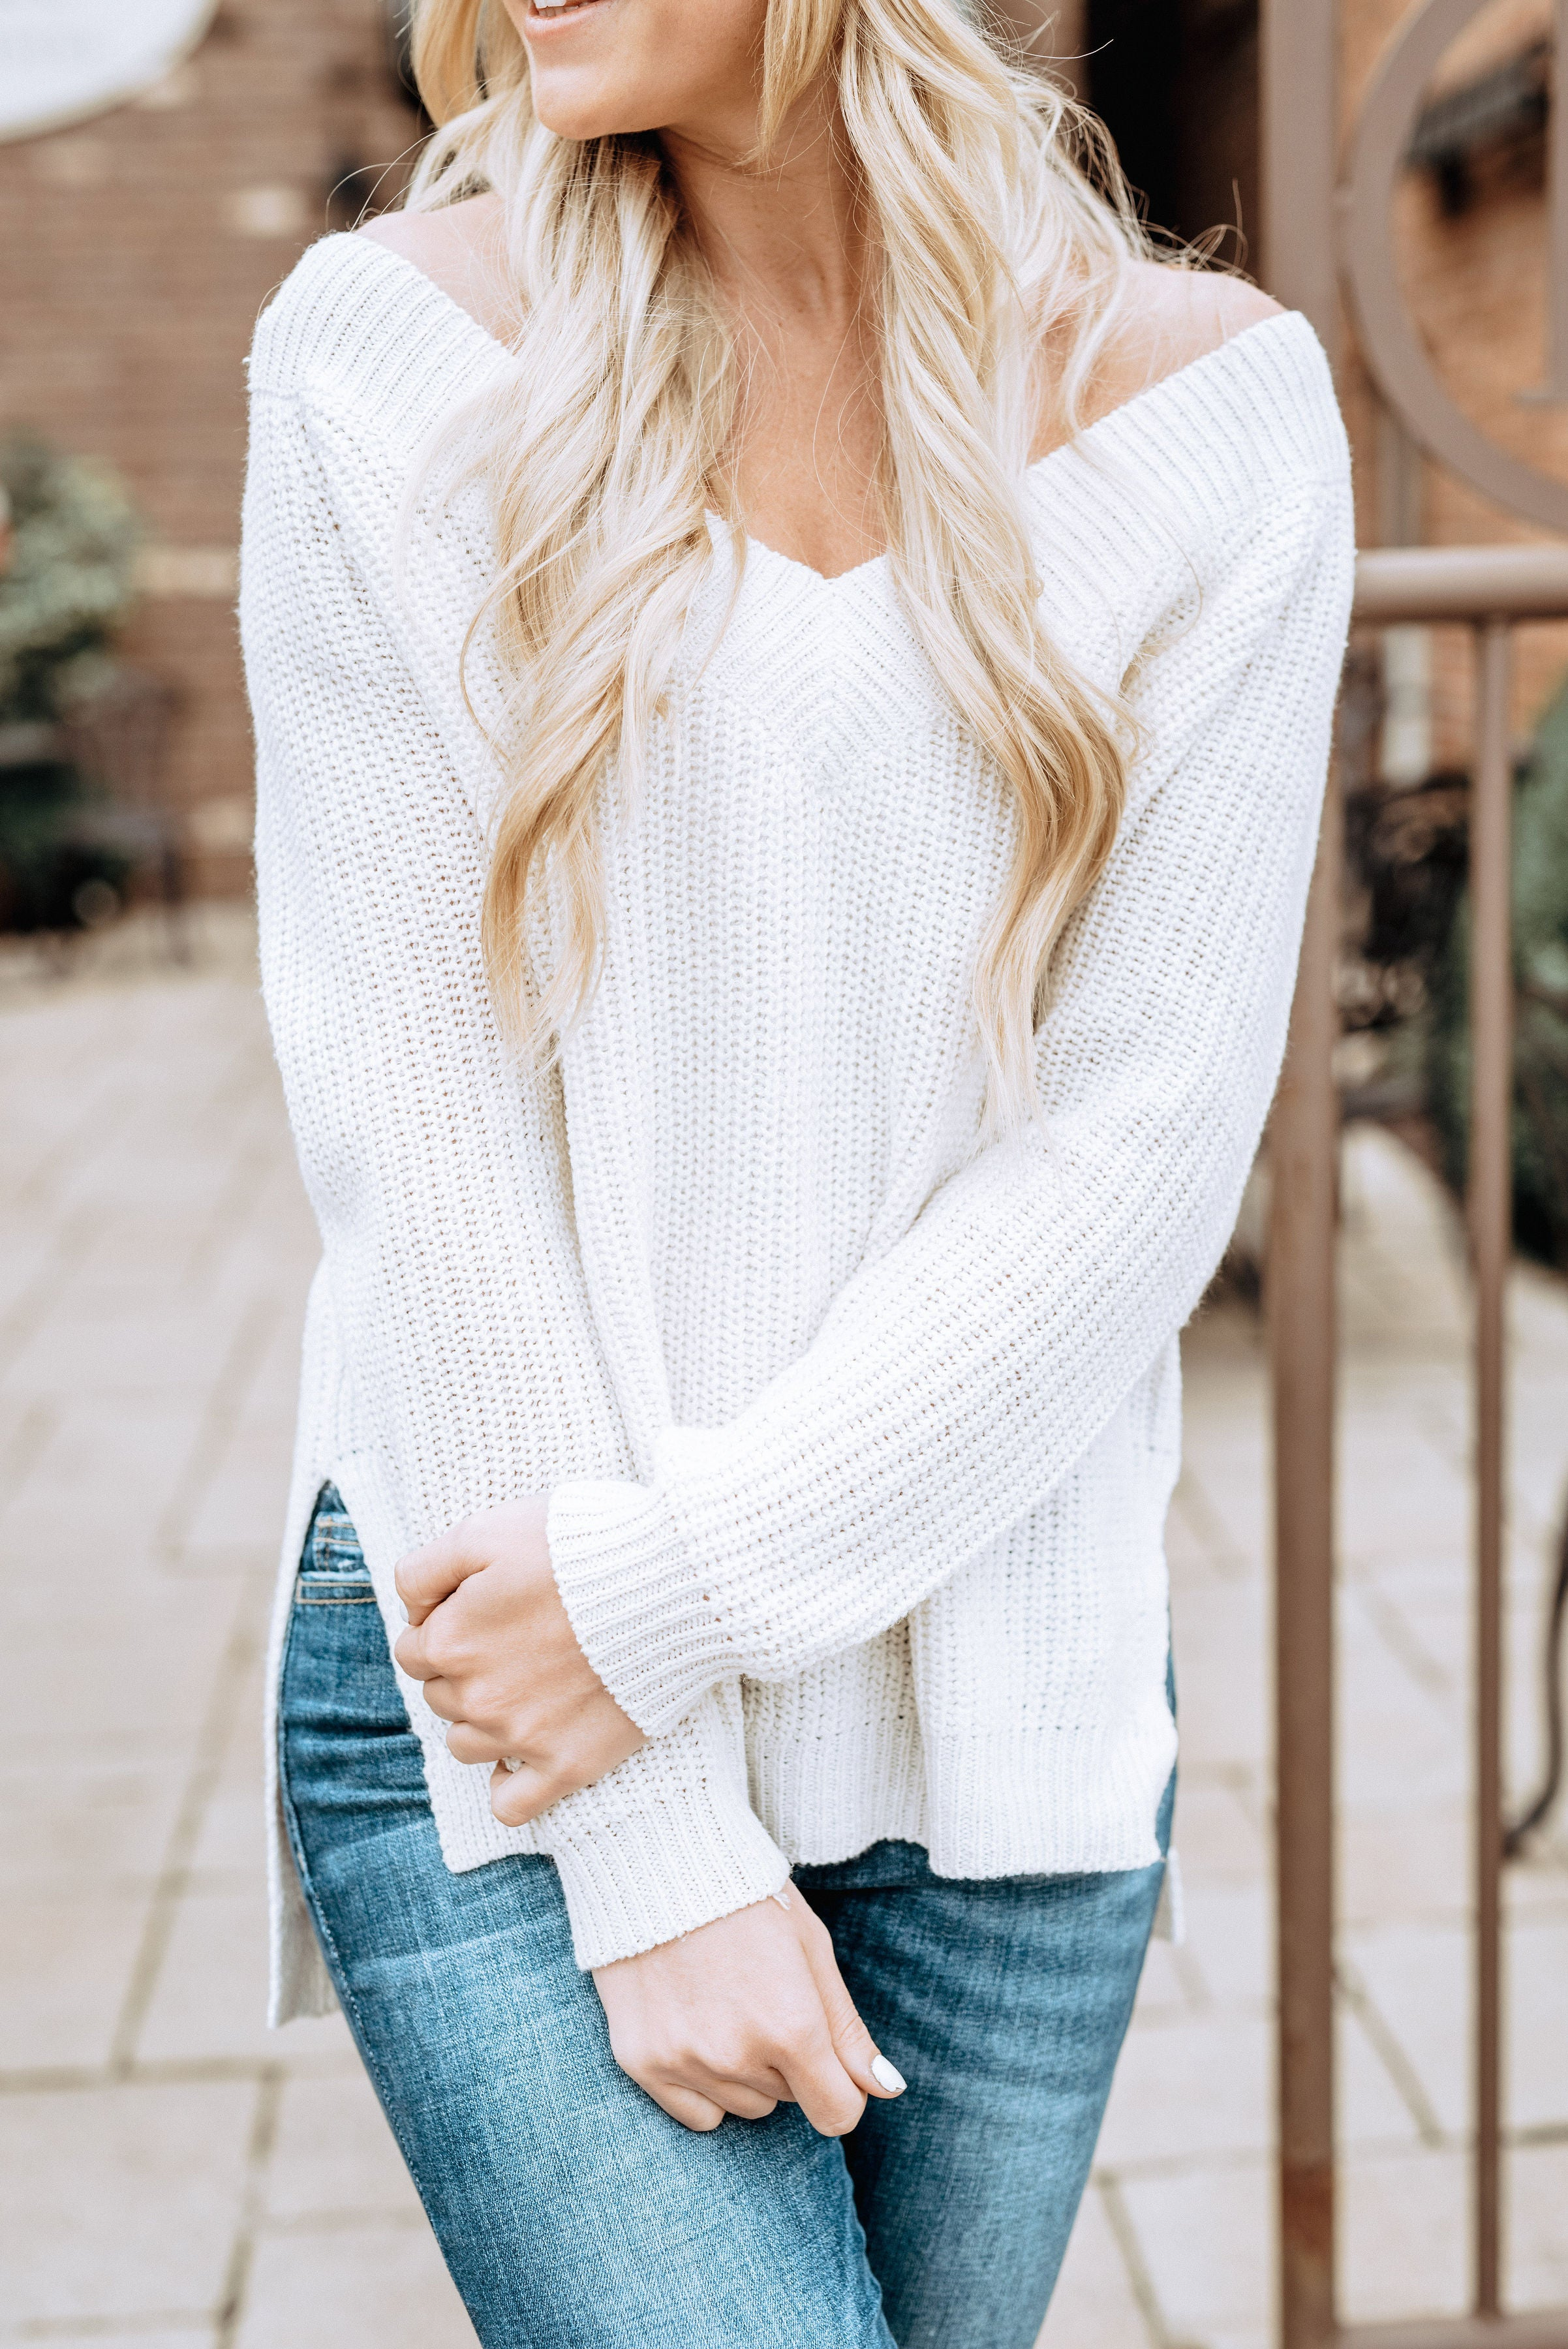 Sweater Weather 10 Fall Must Have Sweaters For Fall